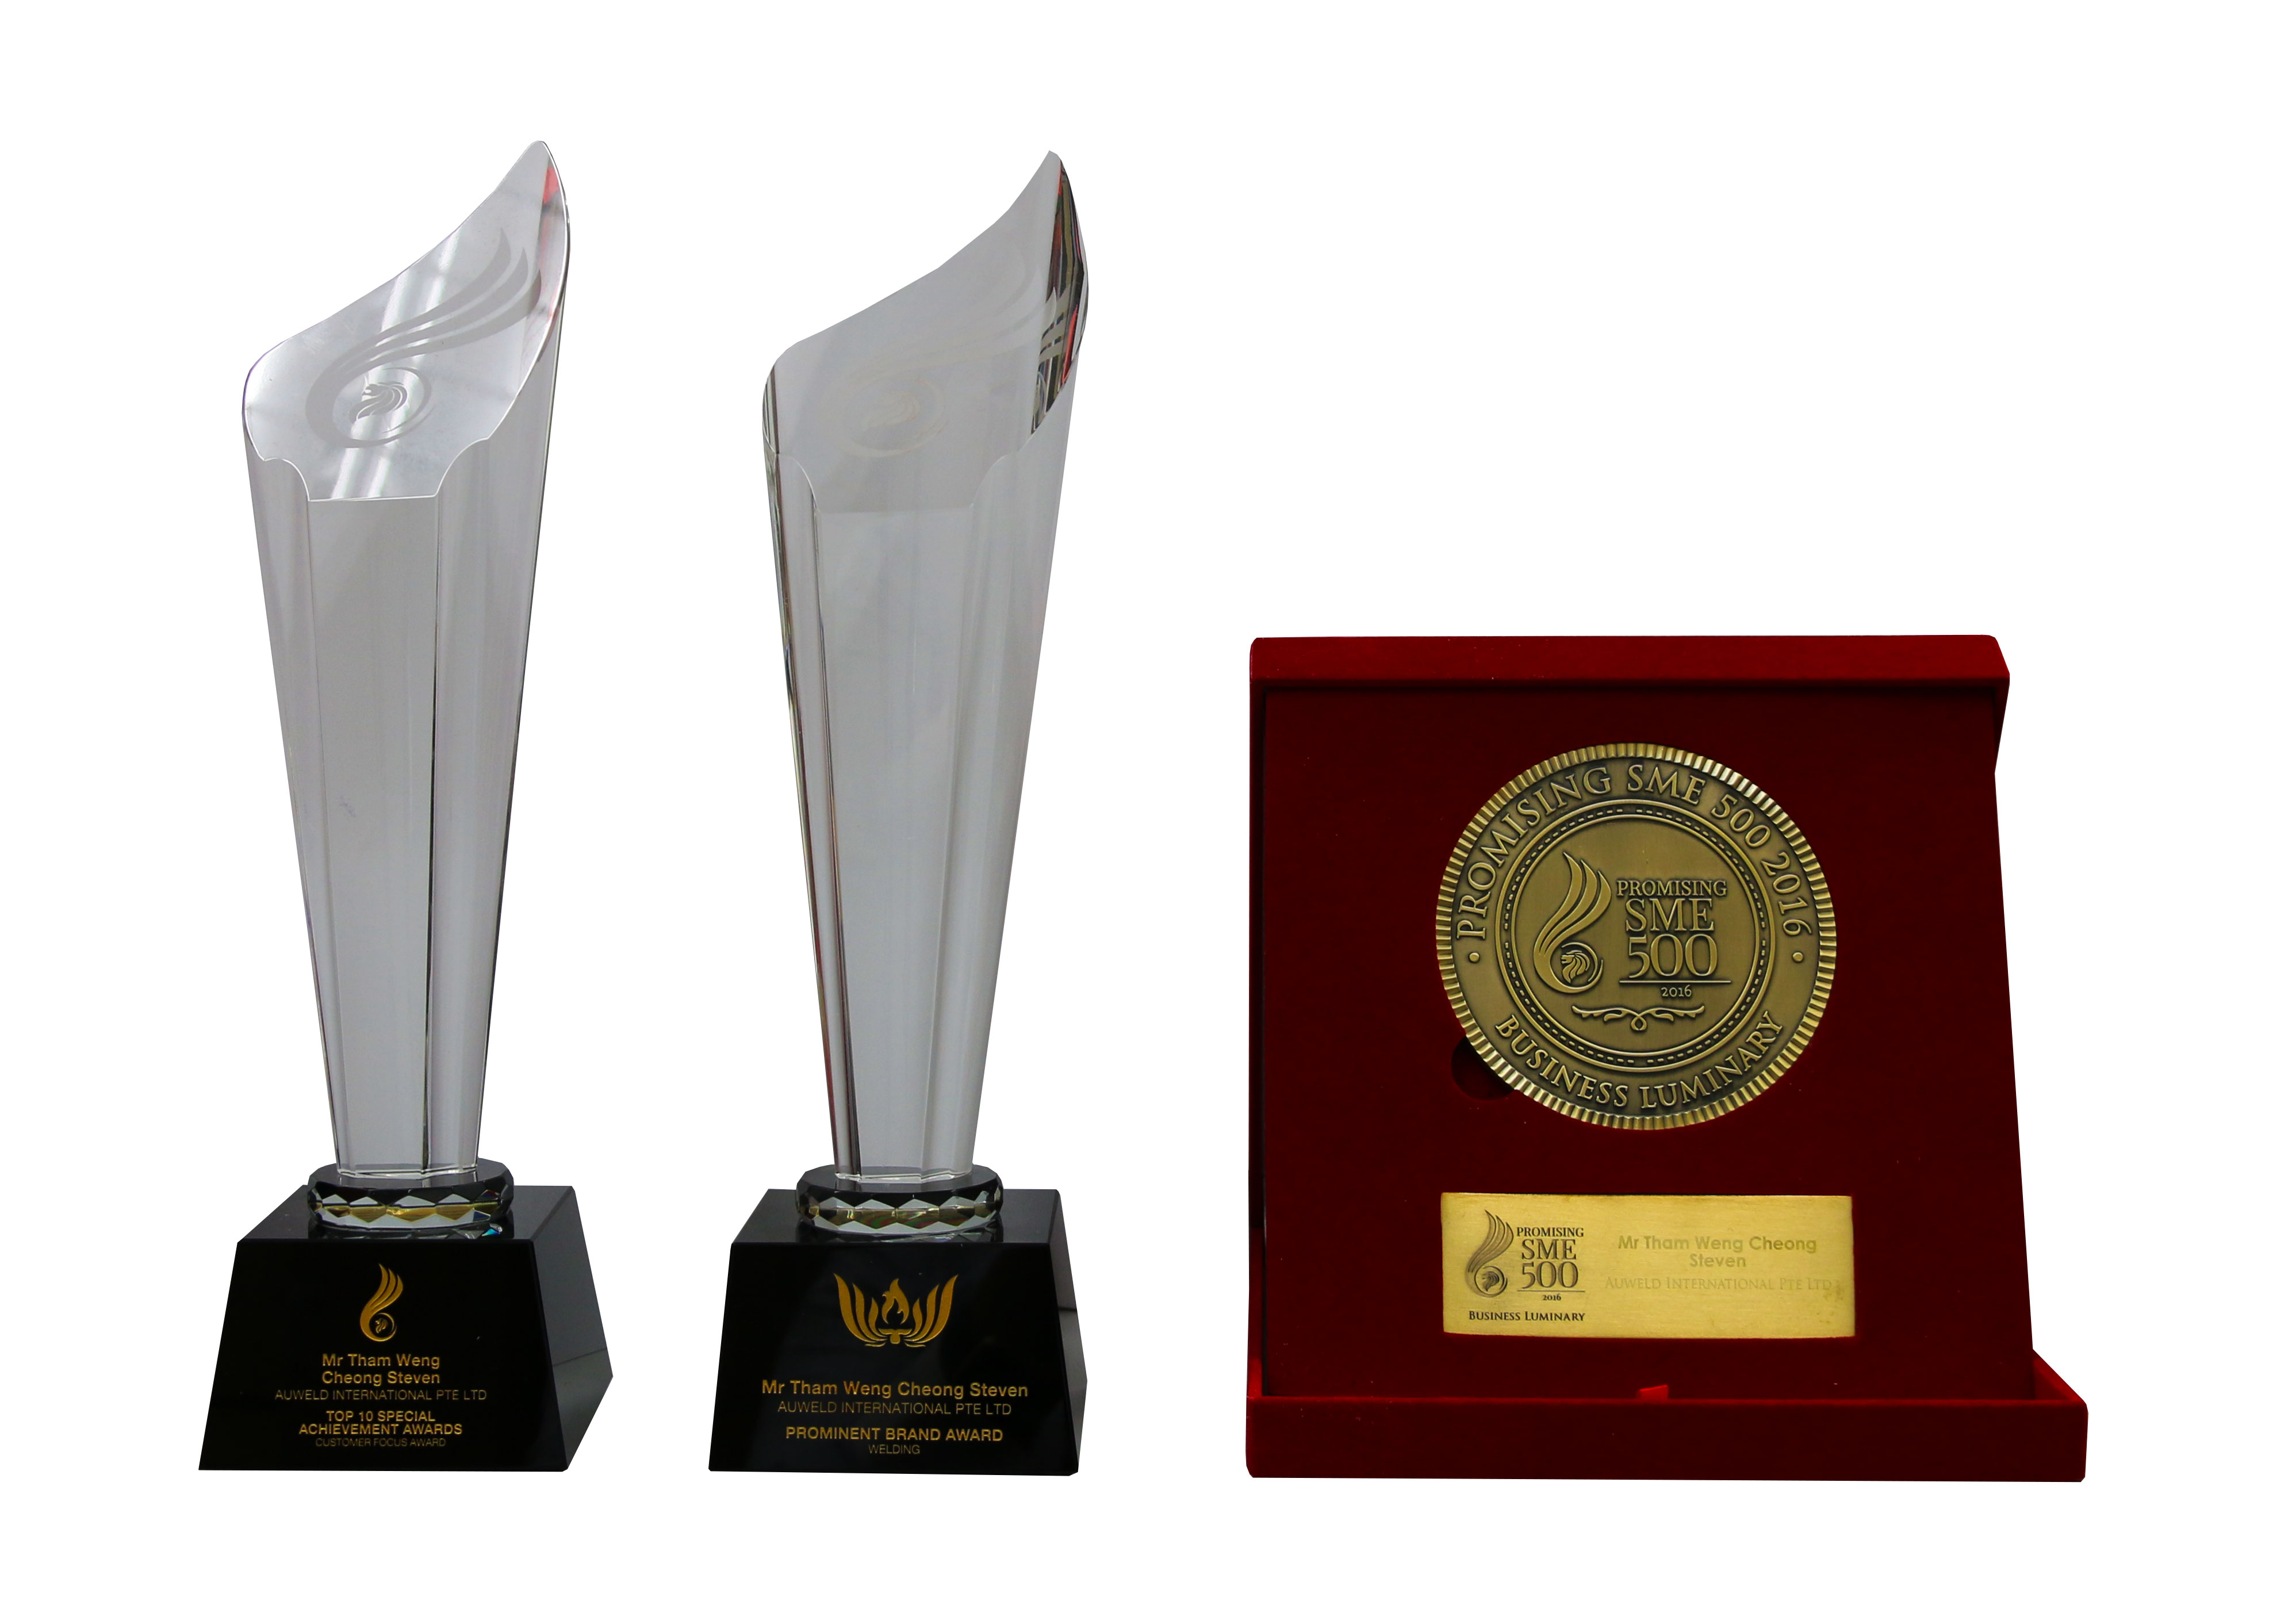 Awards received in 2016